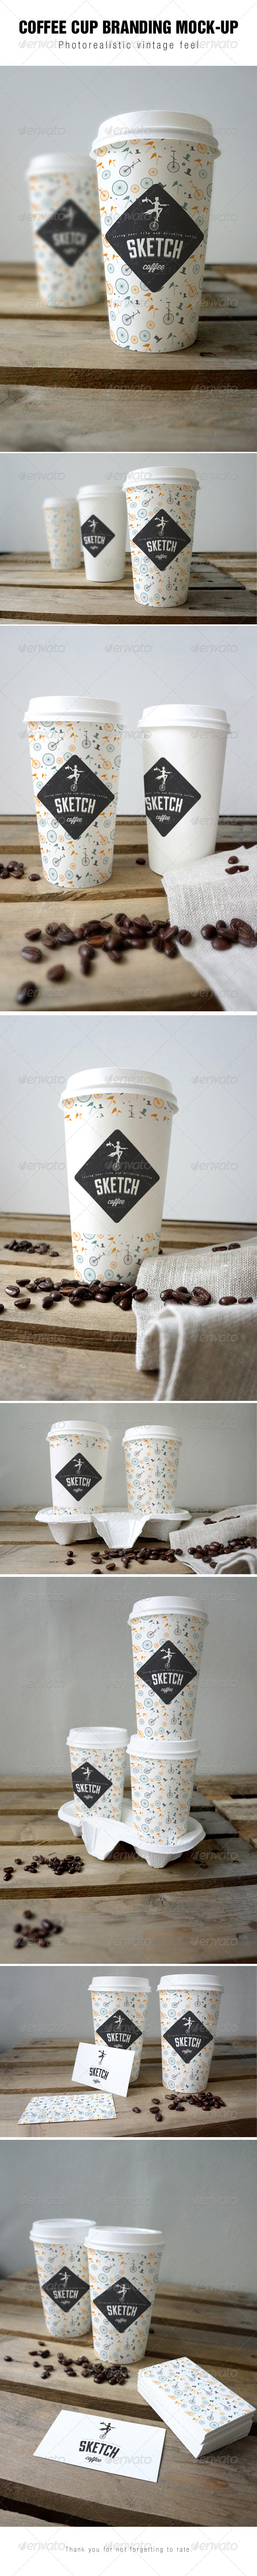 GraphicRiver Coffee cup branding Mock-up 6994678